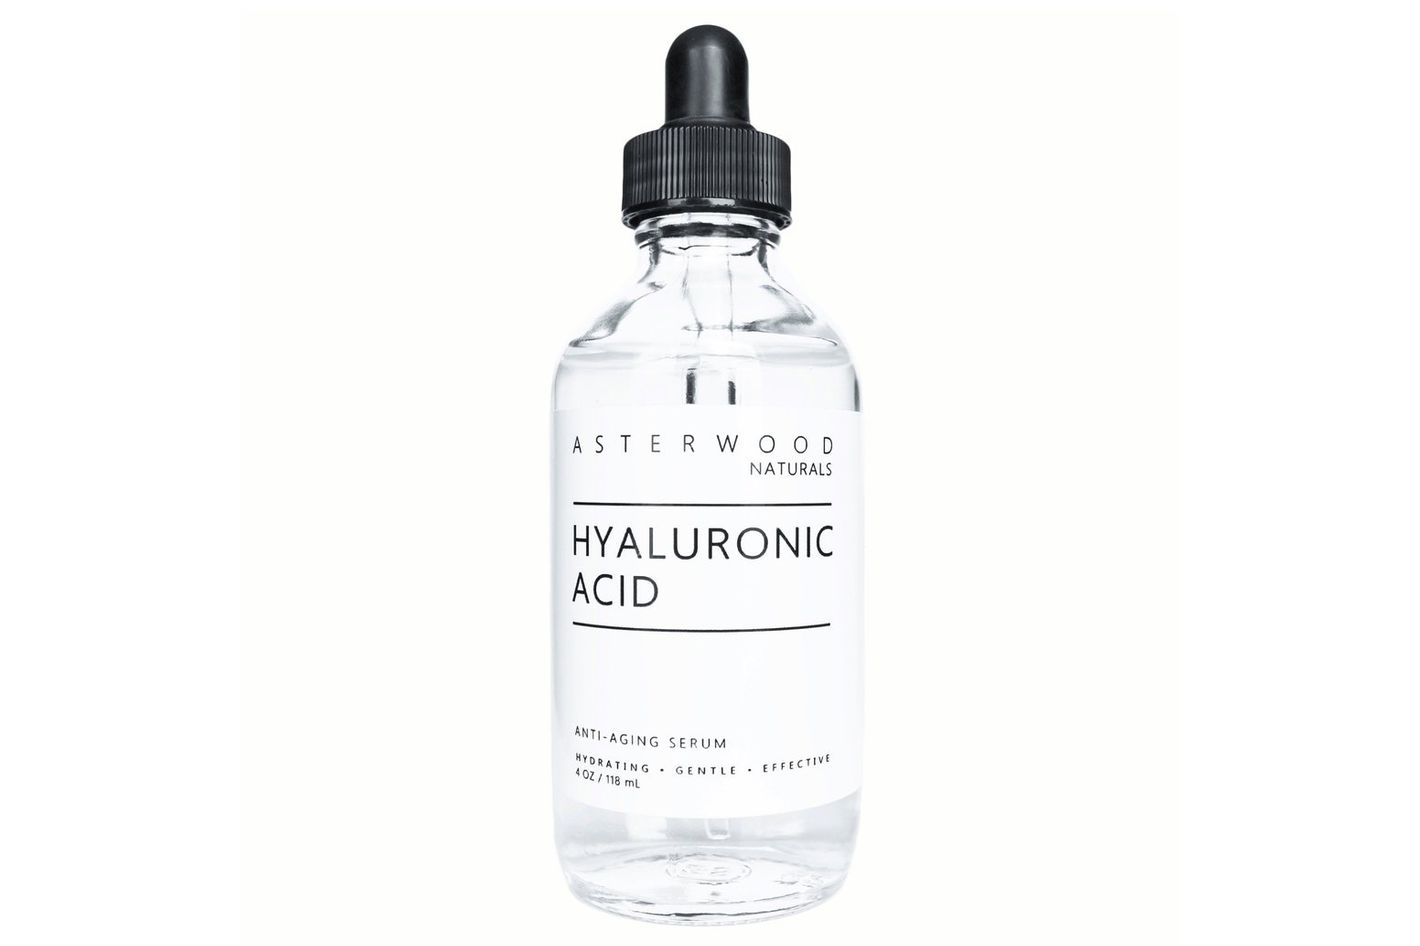 Asterwood Hyaluronic Acid Serum.